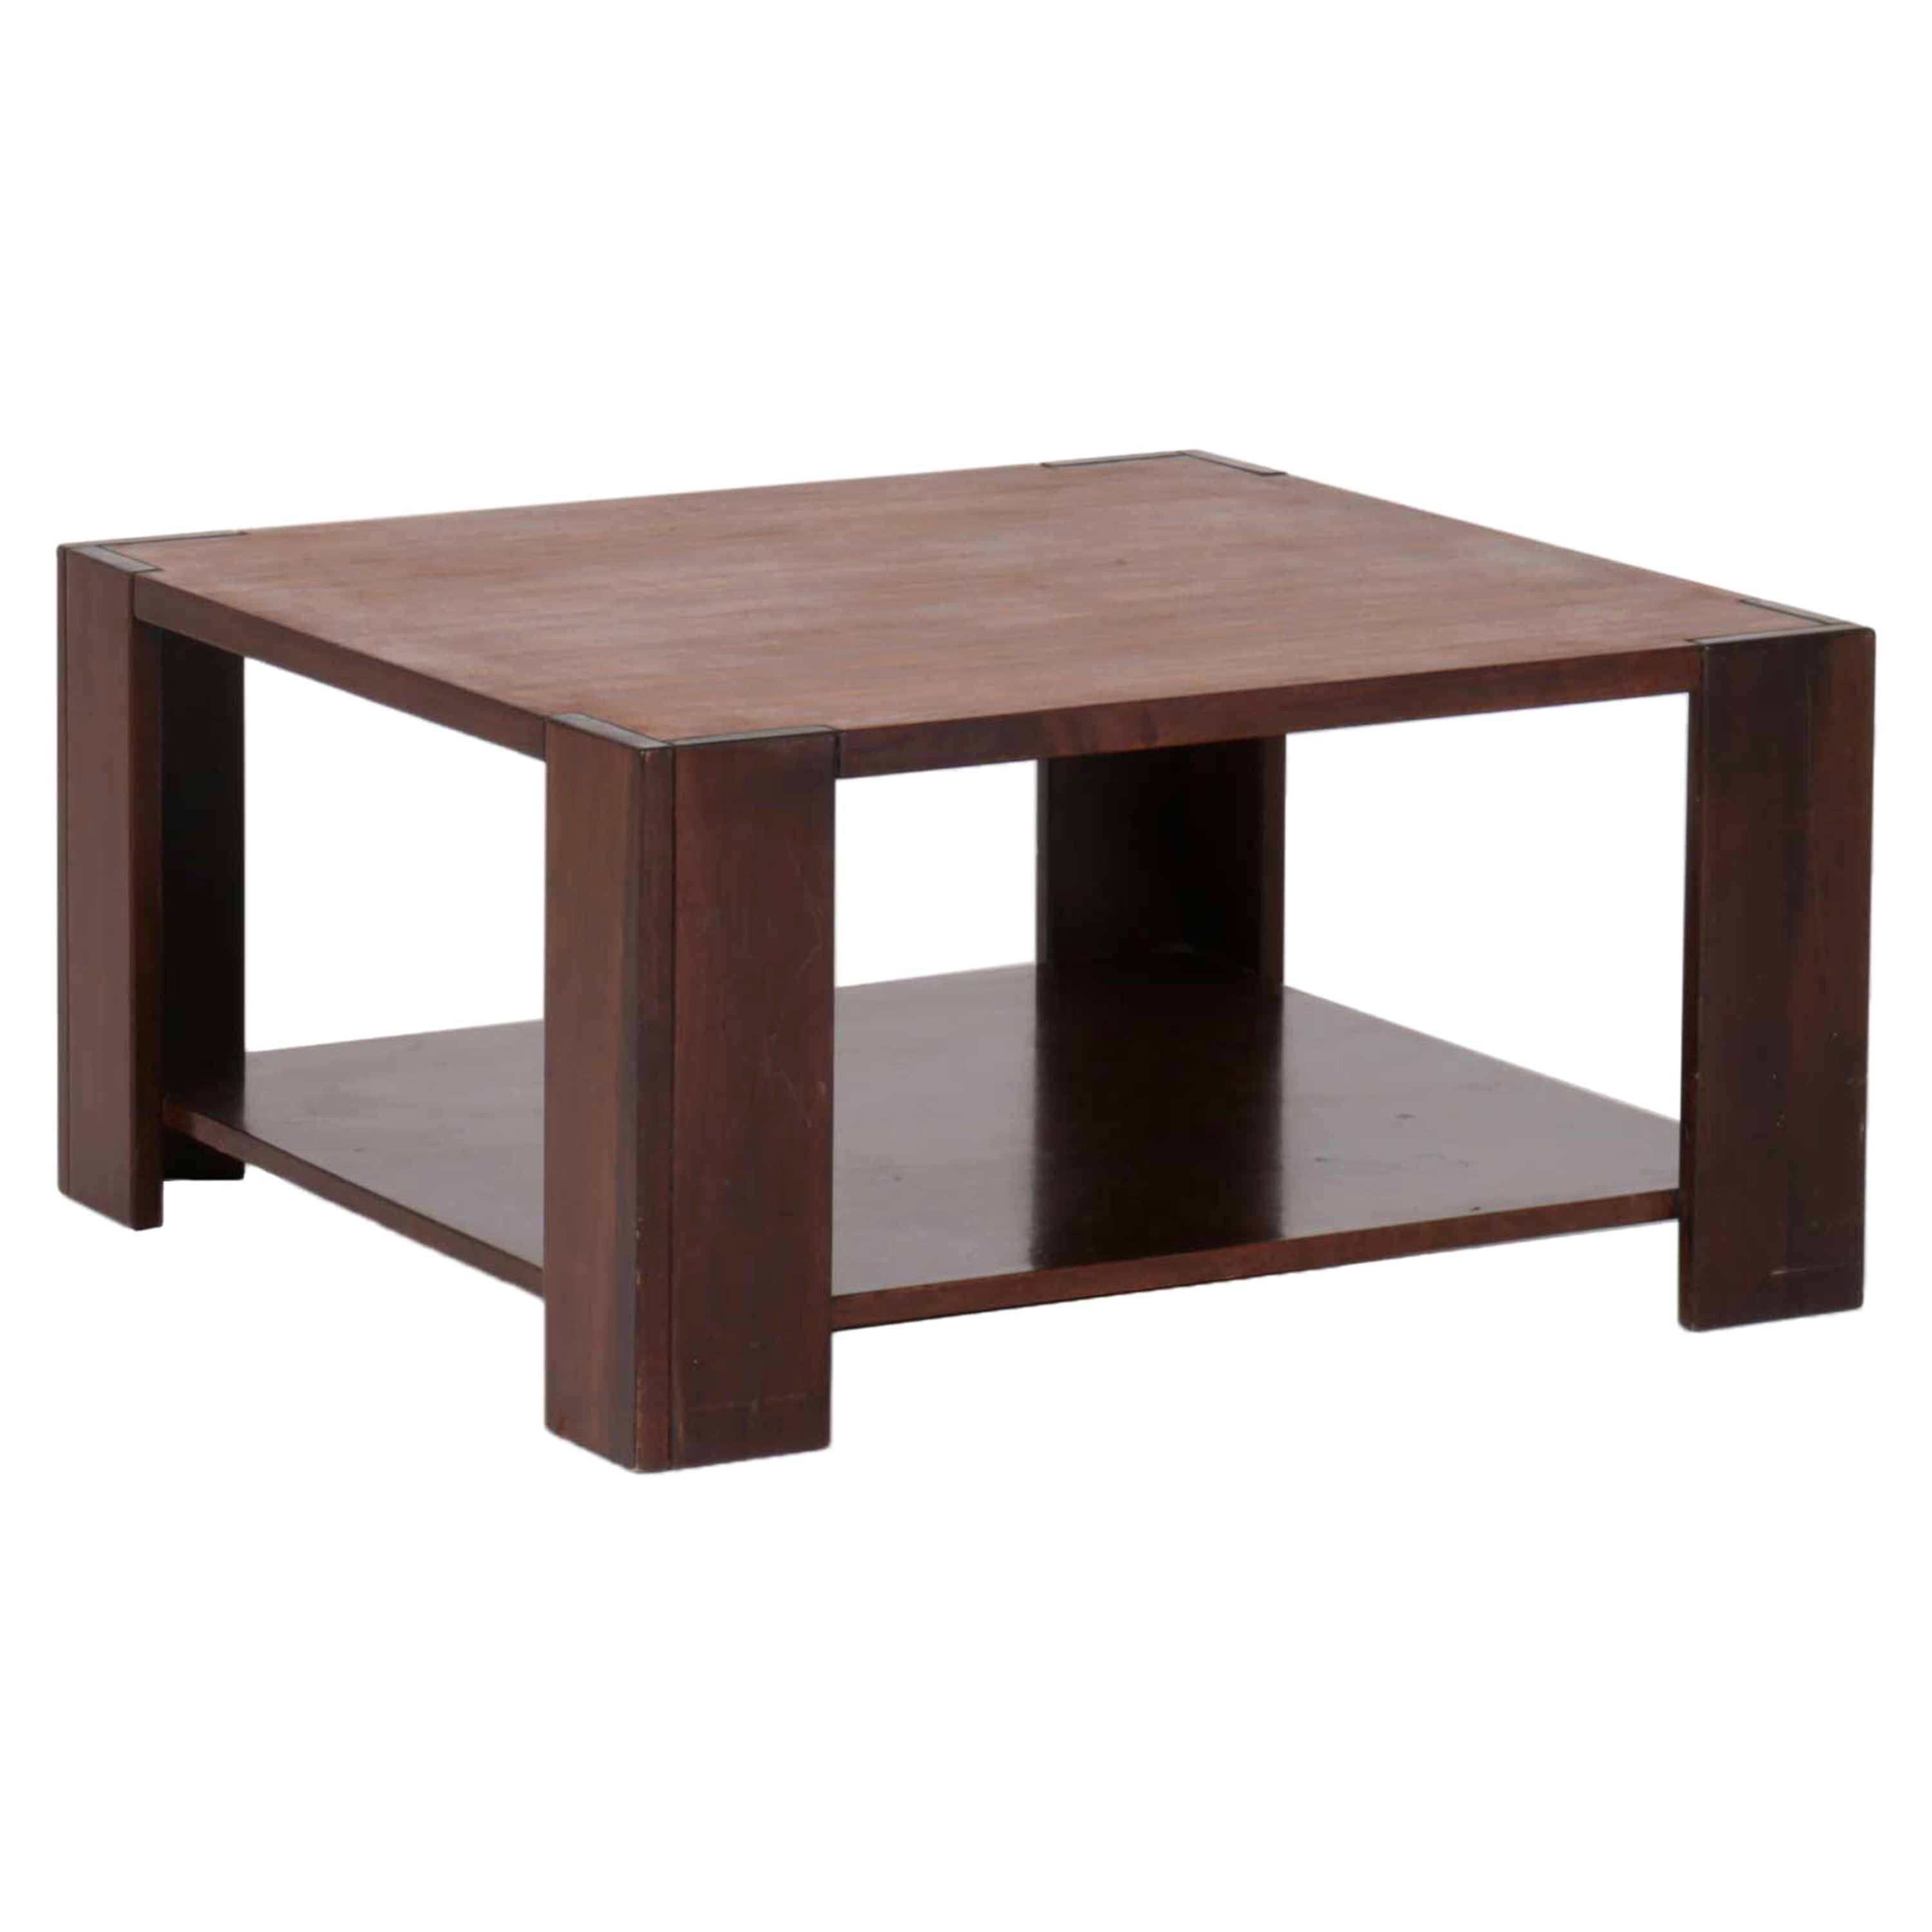 Bastiano Coffee Table in Wood by Tobia Scarpa